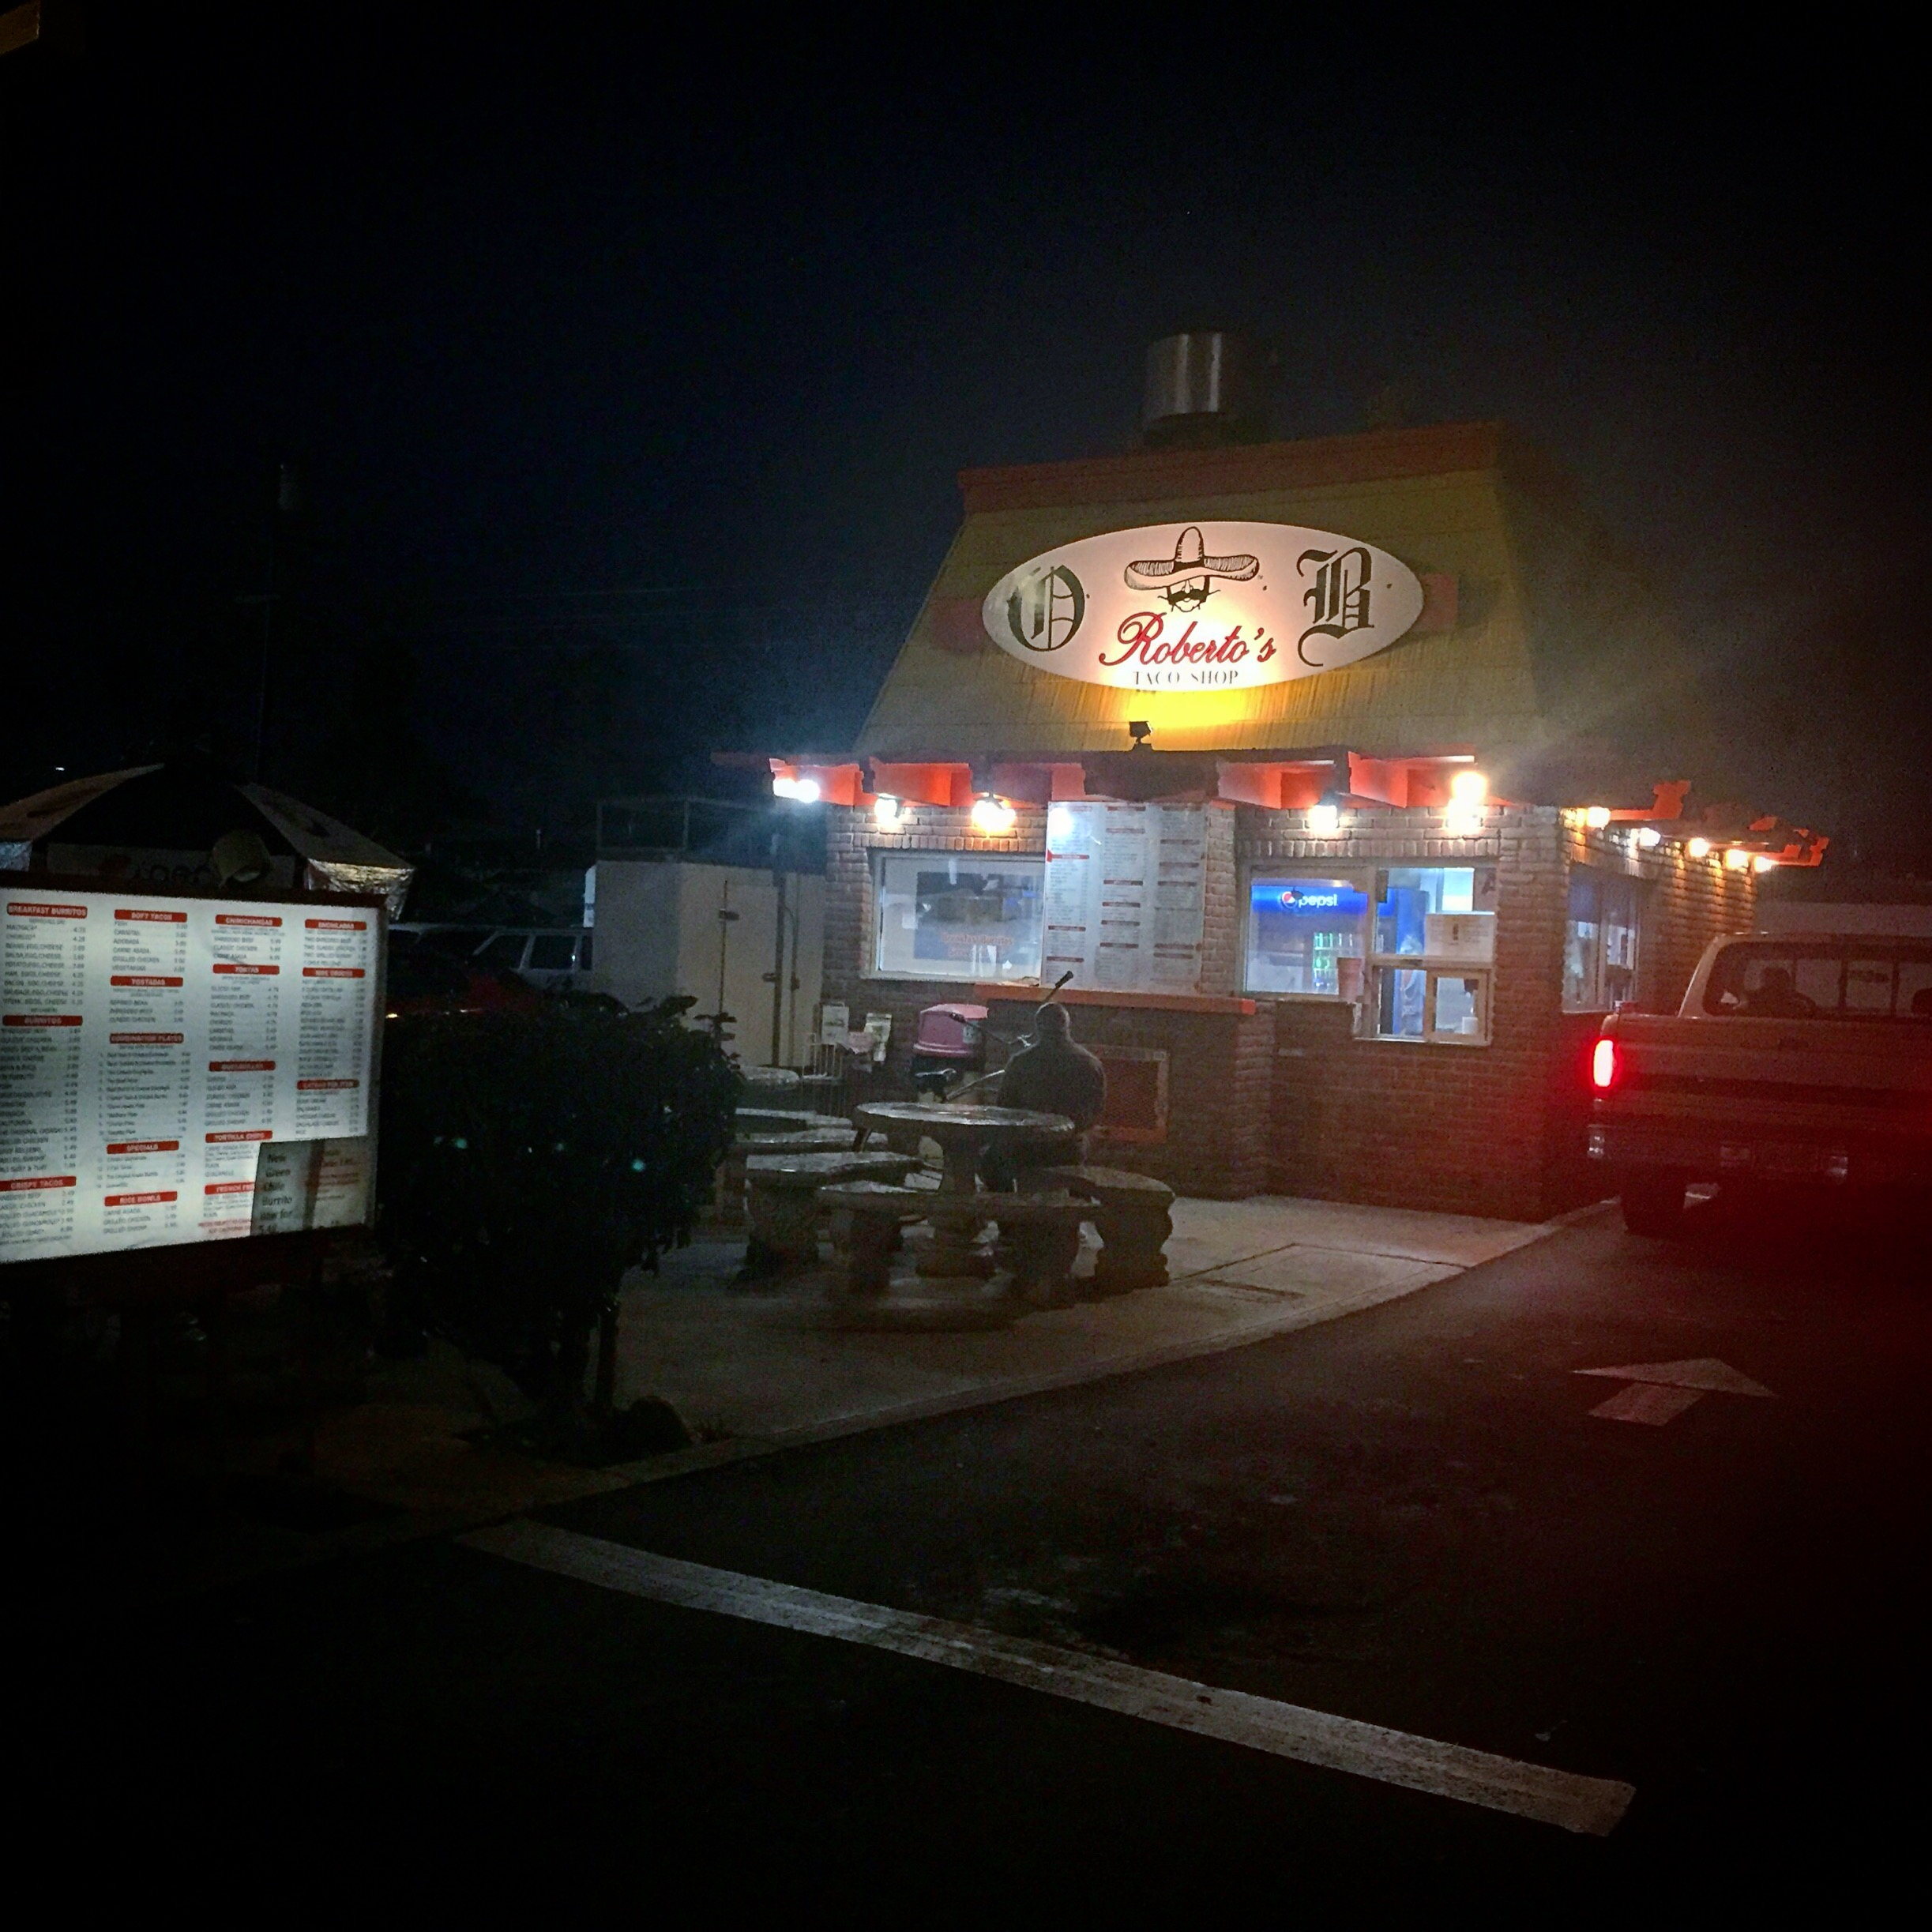 "The quintessential late night drive-thru fast food in San Diego is Roberto's or one of his ""cousin's"" joints. First opened in 1964 in San Ysidro  Roberto's is a culinary icon in SD. Too many imitators to name have spun off all ending in `bertos. Albertos, Alibertos, Filibertos, Aibertos, Gualbertos, Jilbertos, Hilbertos, Adalbertos, Roybertos, Rambertos, Hambertos, Humbertos, Rubertos, and Rolbertos, and my personal fav, Juan Bertos. Open 24 hours - who amongst us hasn't made the late night stop (read drunken) for a wet bean and cheese burrito or 5 rolled tacos w guacamole at least once. This Robertos is in OB, my favorite little beach community."